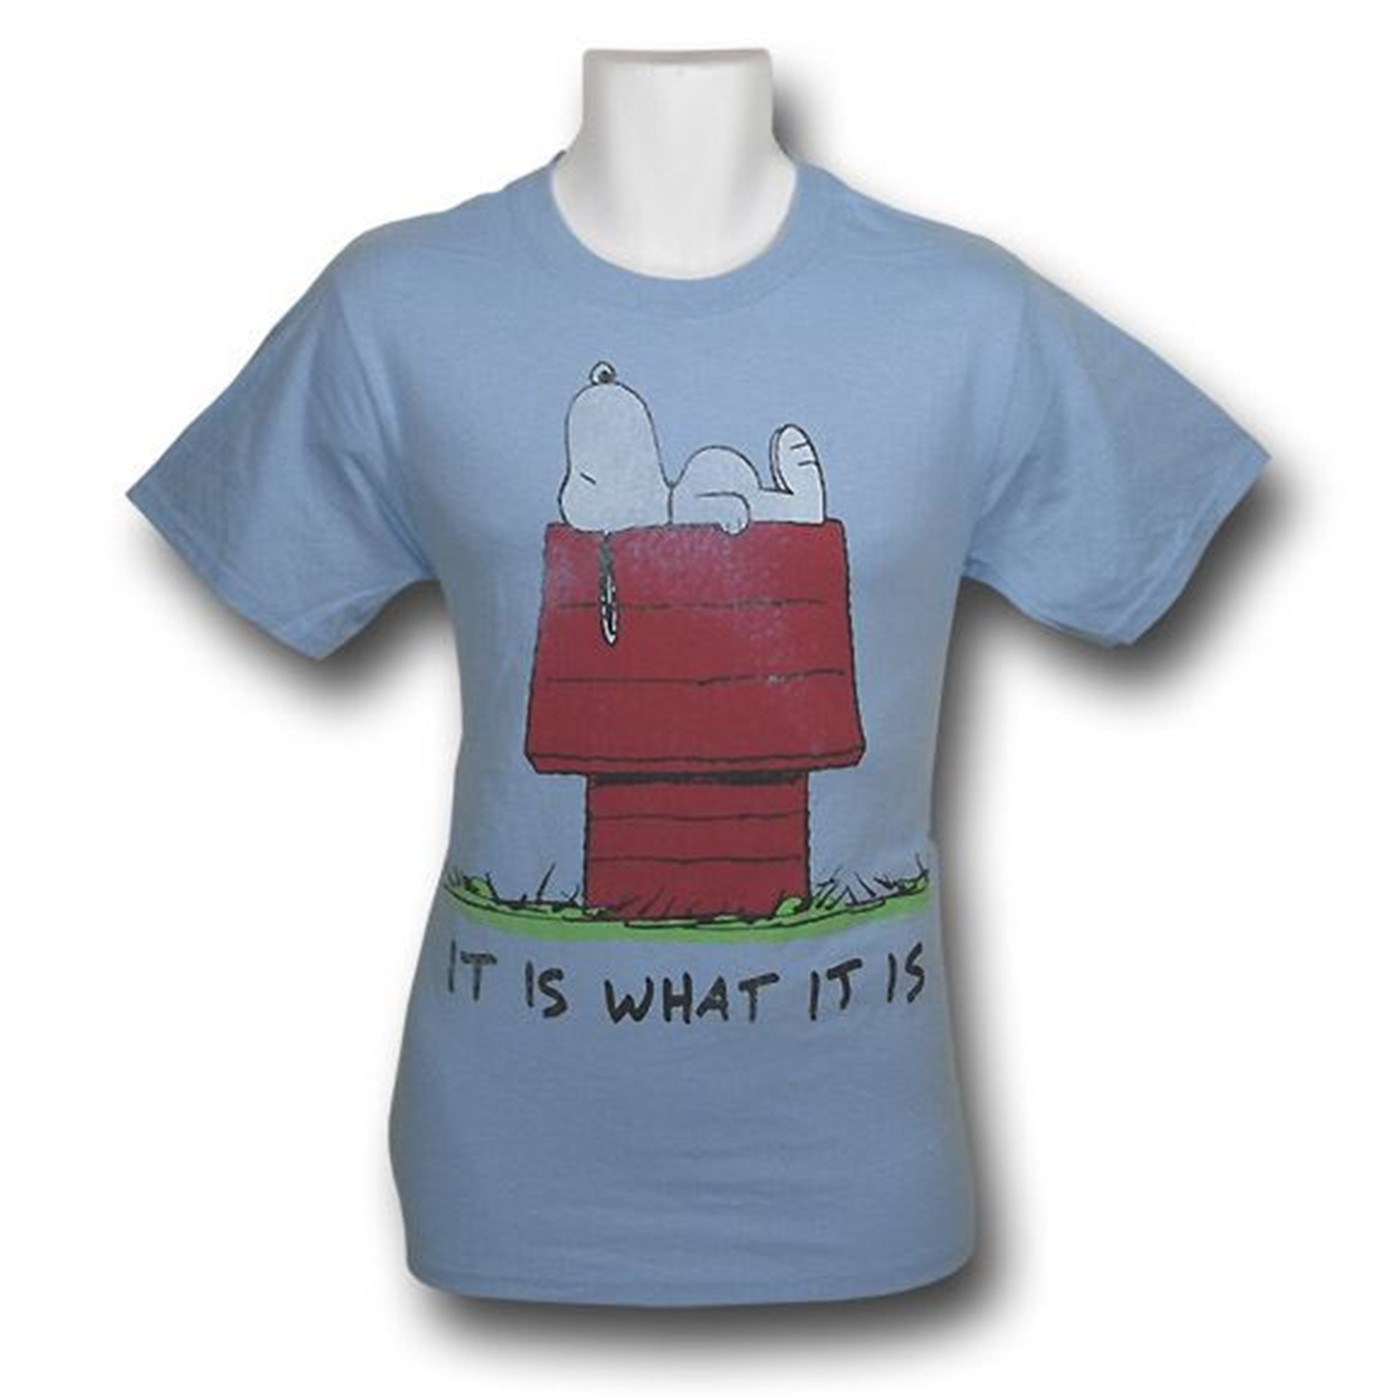 Snoopy Distressed It Is T-Shirt